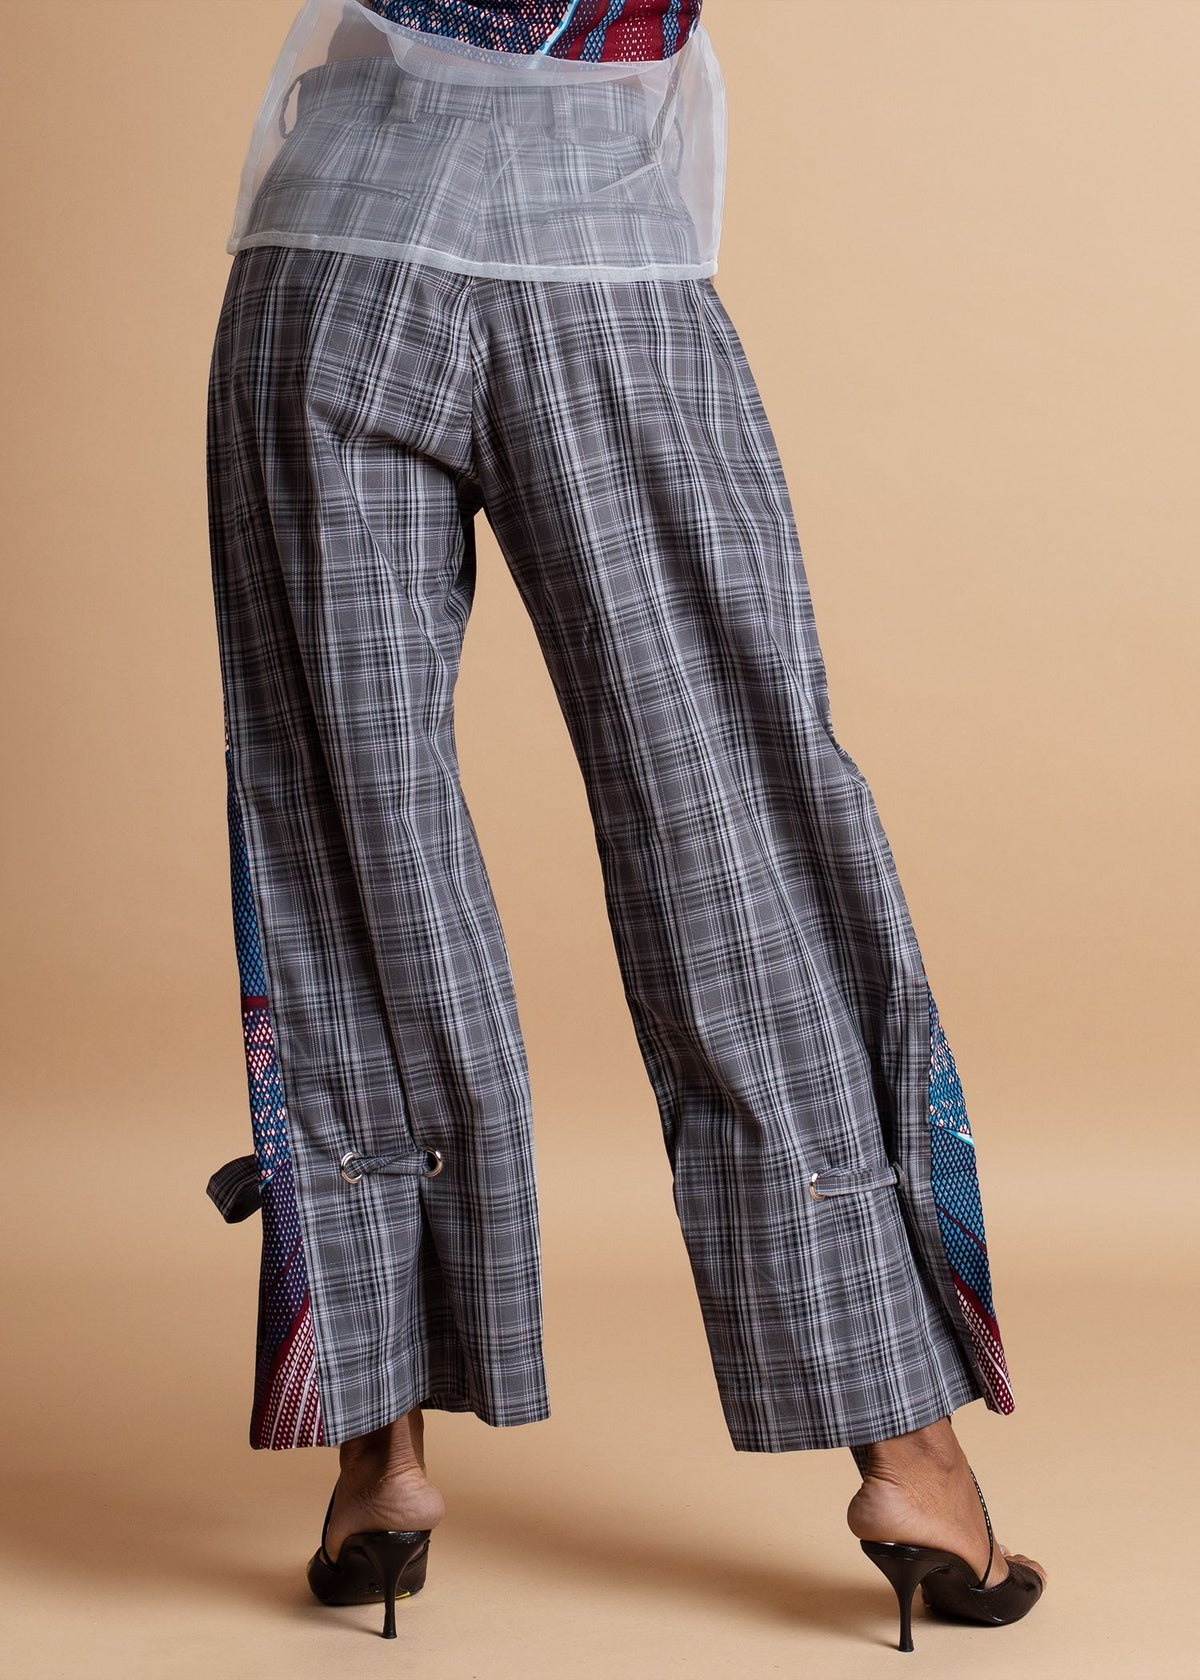 Atto Tetteh Black and White Tartan Print Pant